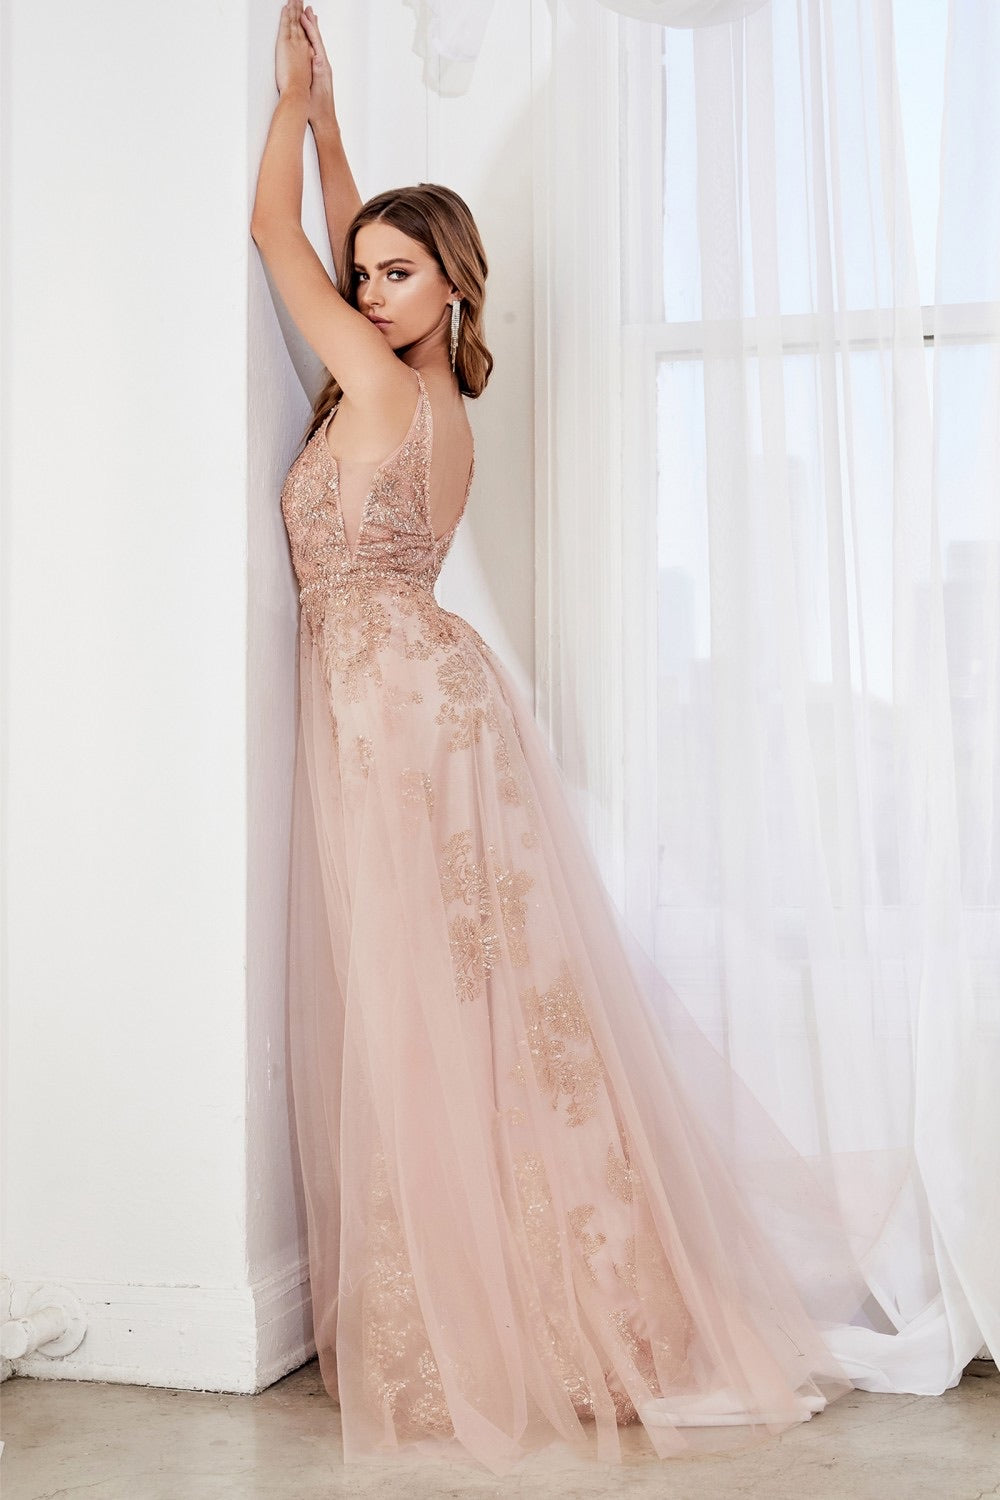 CD Angelica Rose Gold Gown